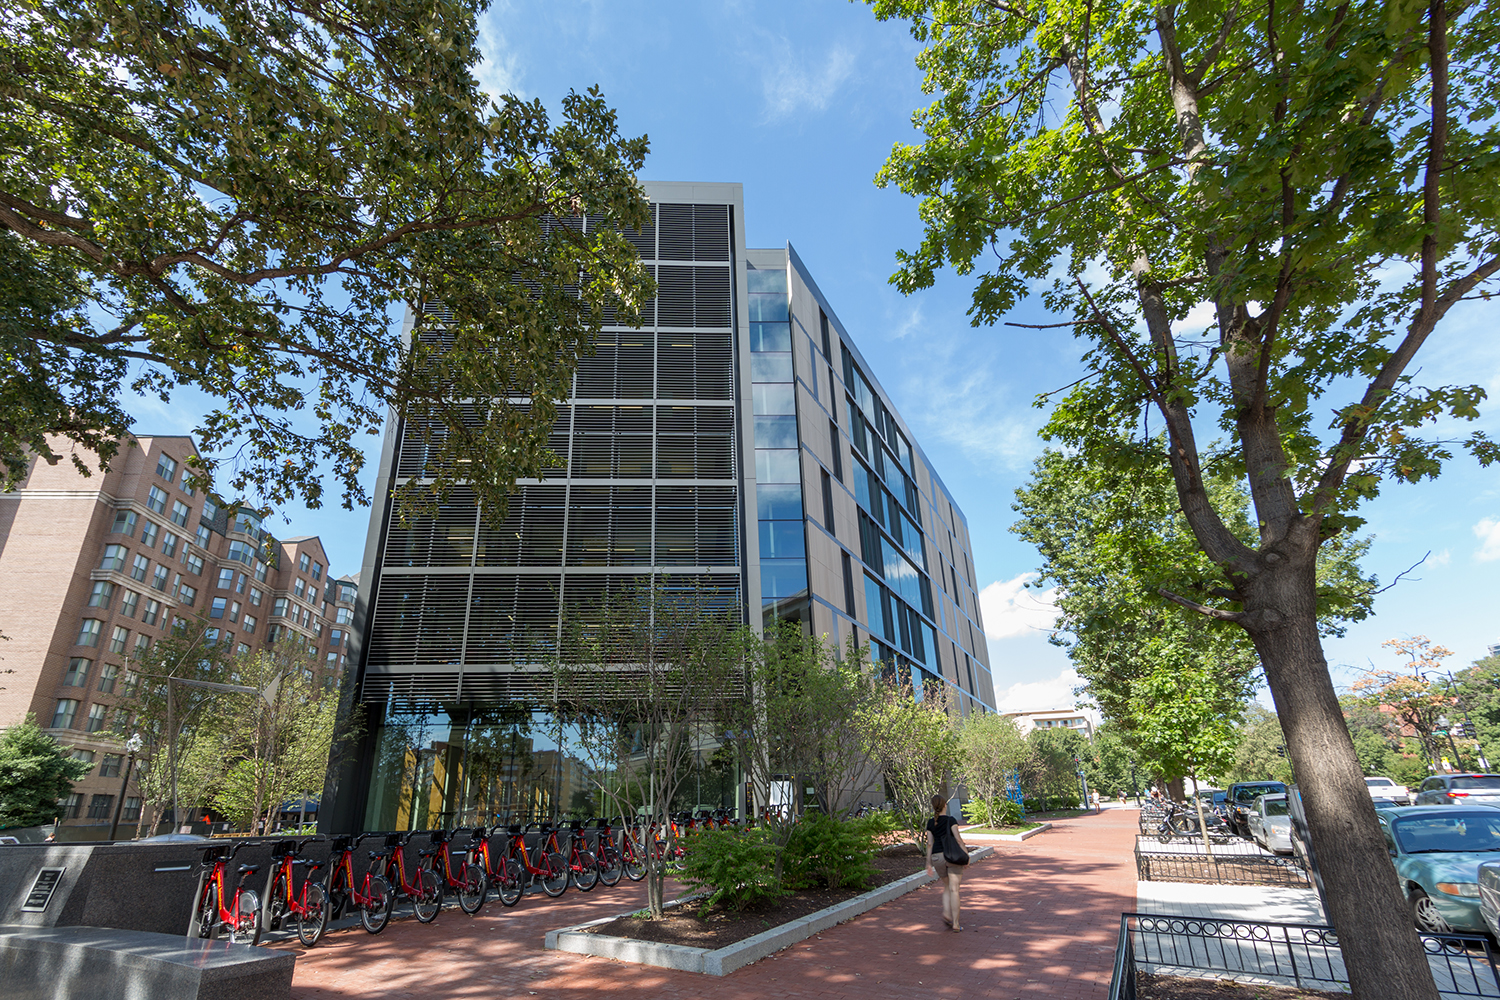 Gw buildings earn leed gold certification gw today the george click to enlarge xflitez Images